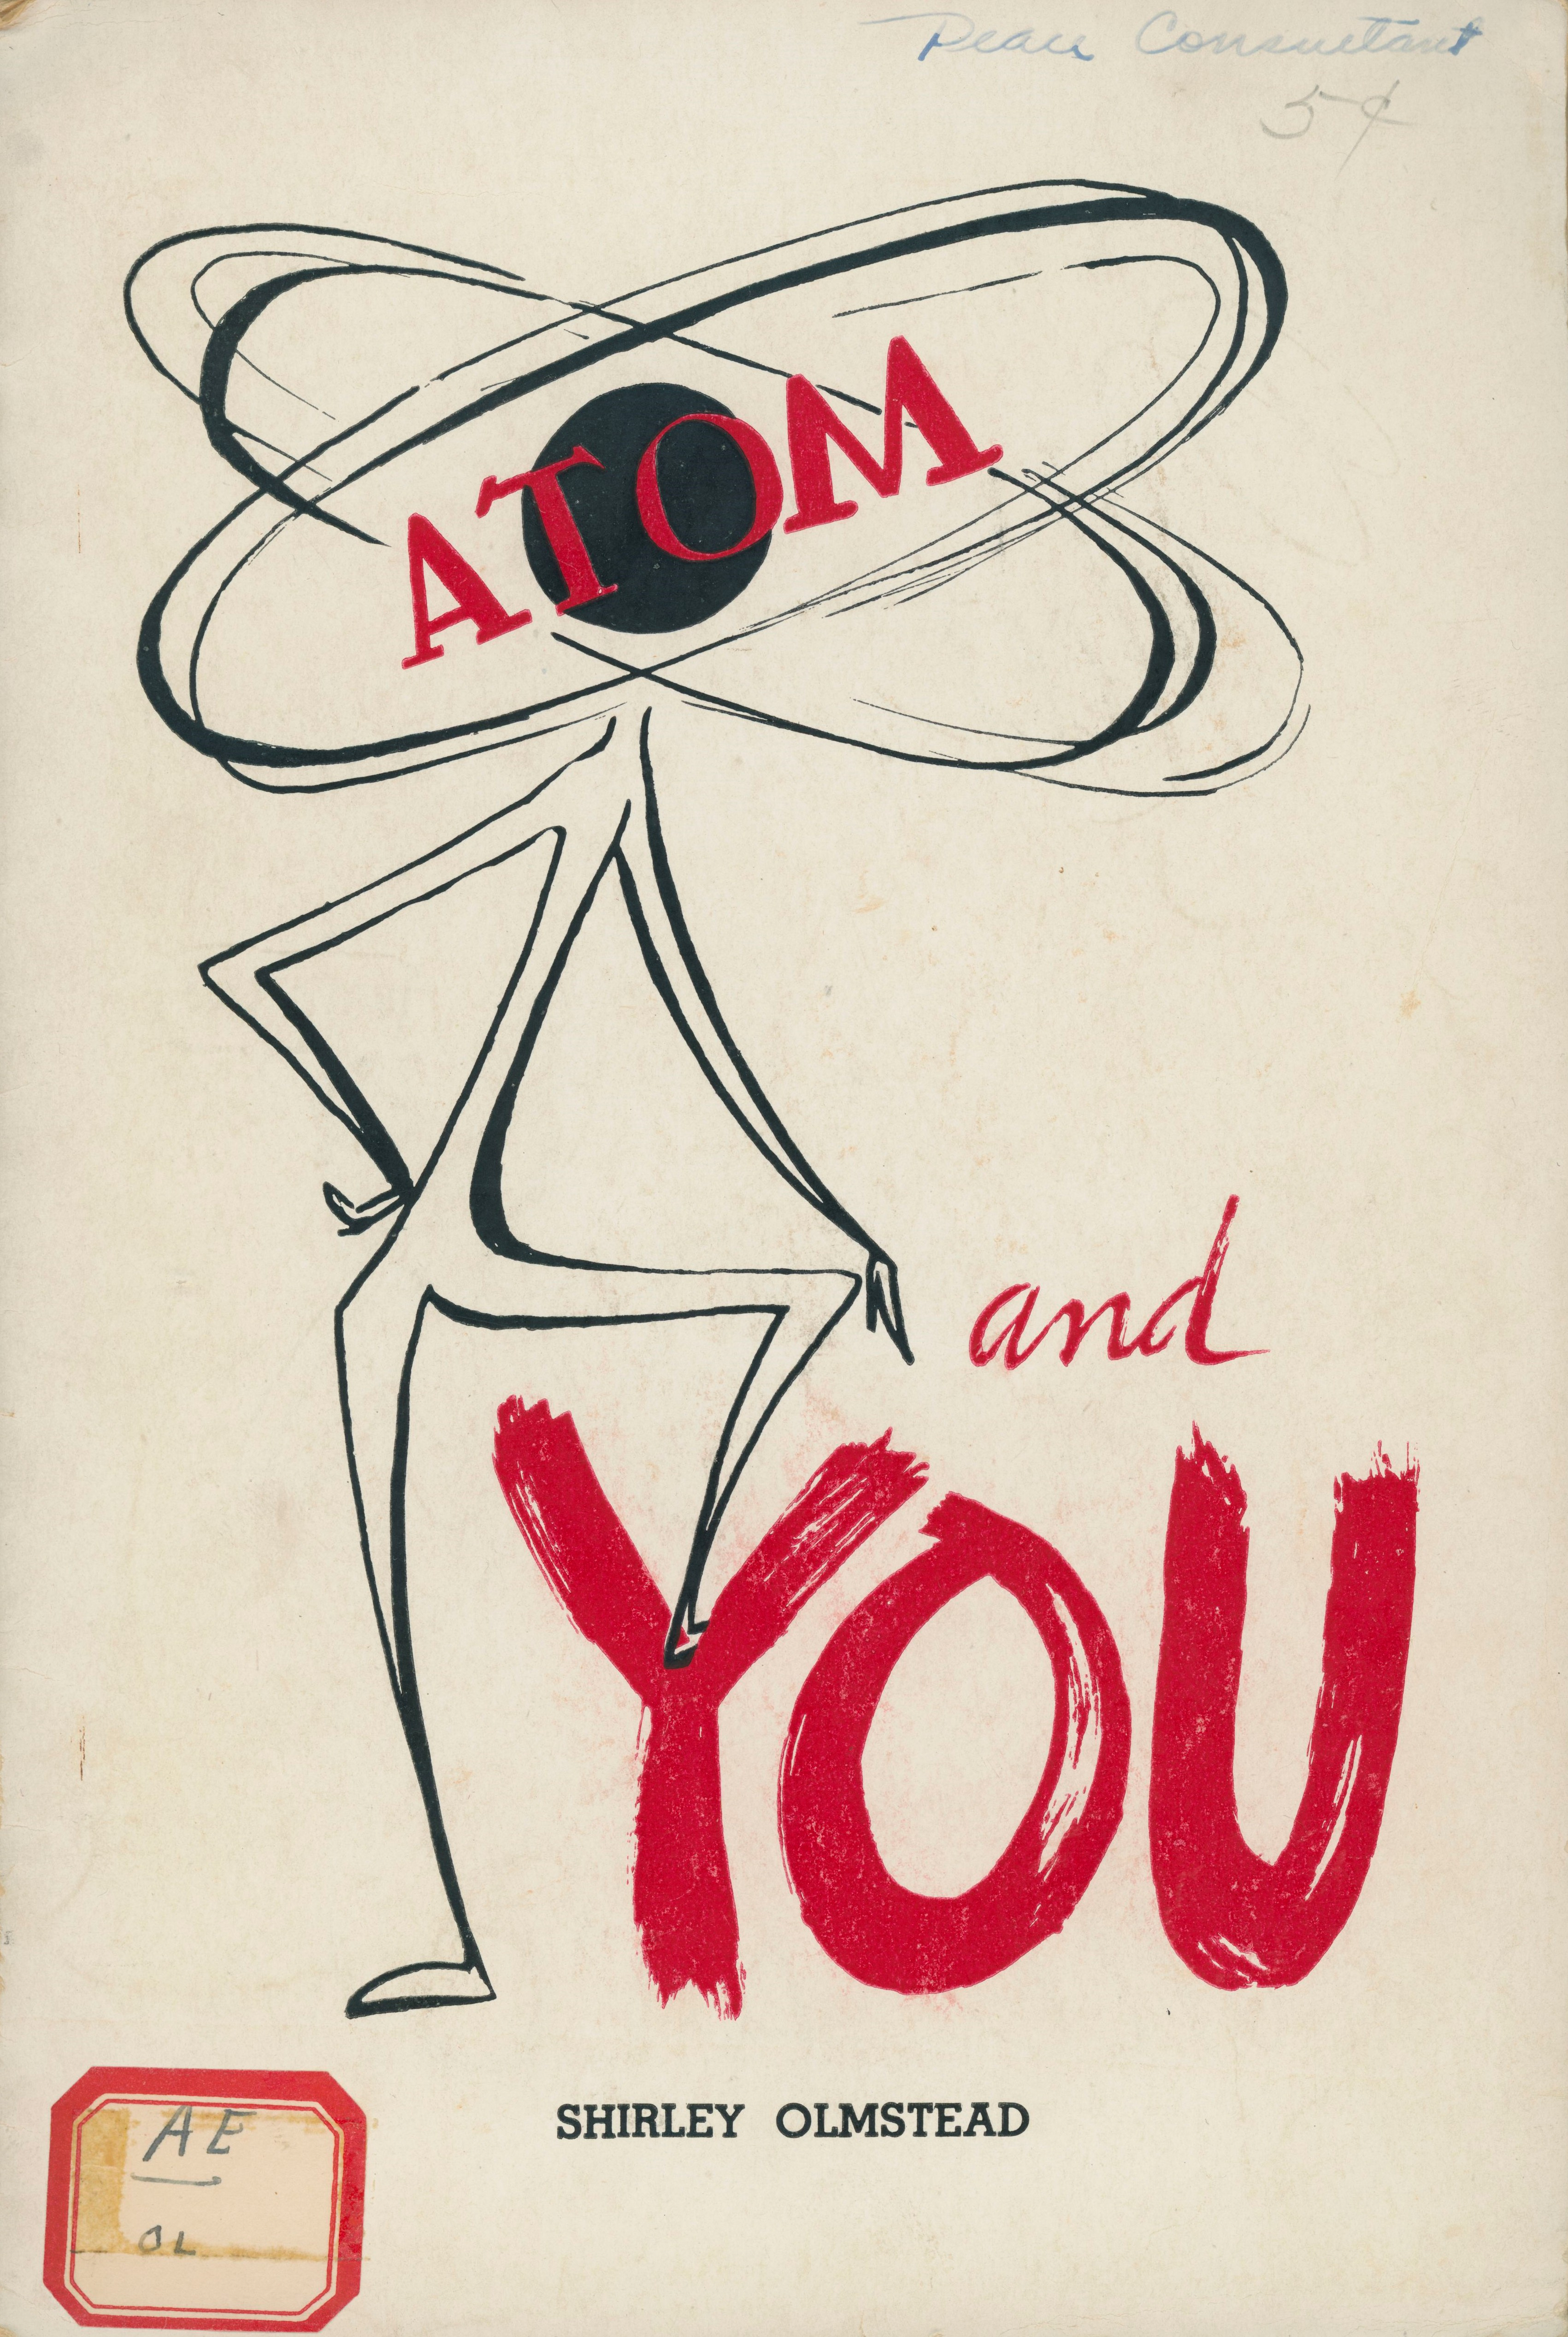 Booklet, Atom and You by Shirley Olmstead.  Elgin, Ill.:  Brethren Service Committee, probably late 1950s - early 1960s.